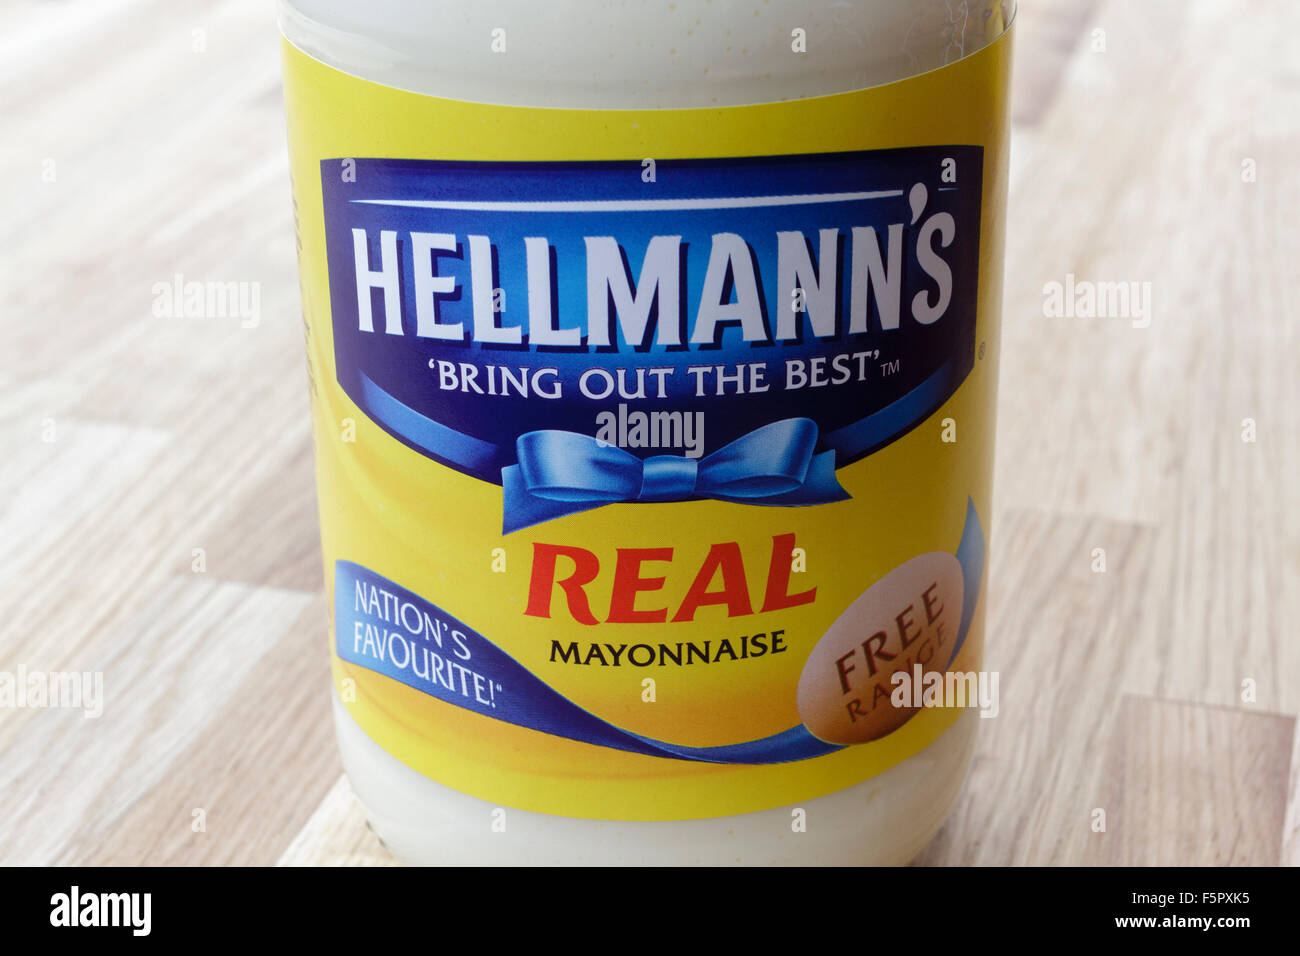 Jar of Hellmanns real mayonnaise - Stock Image